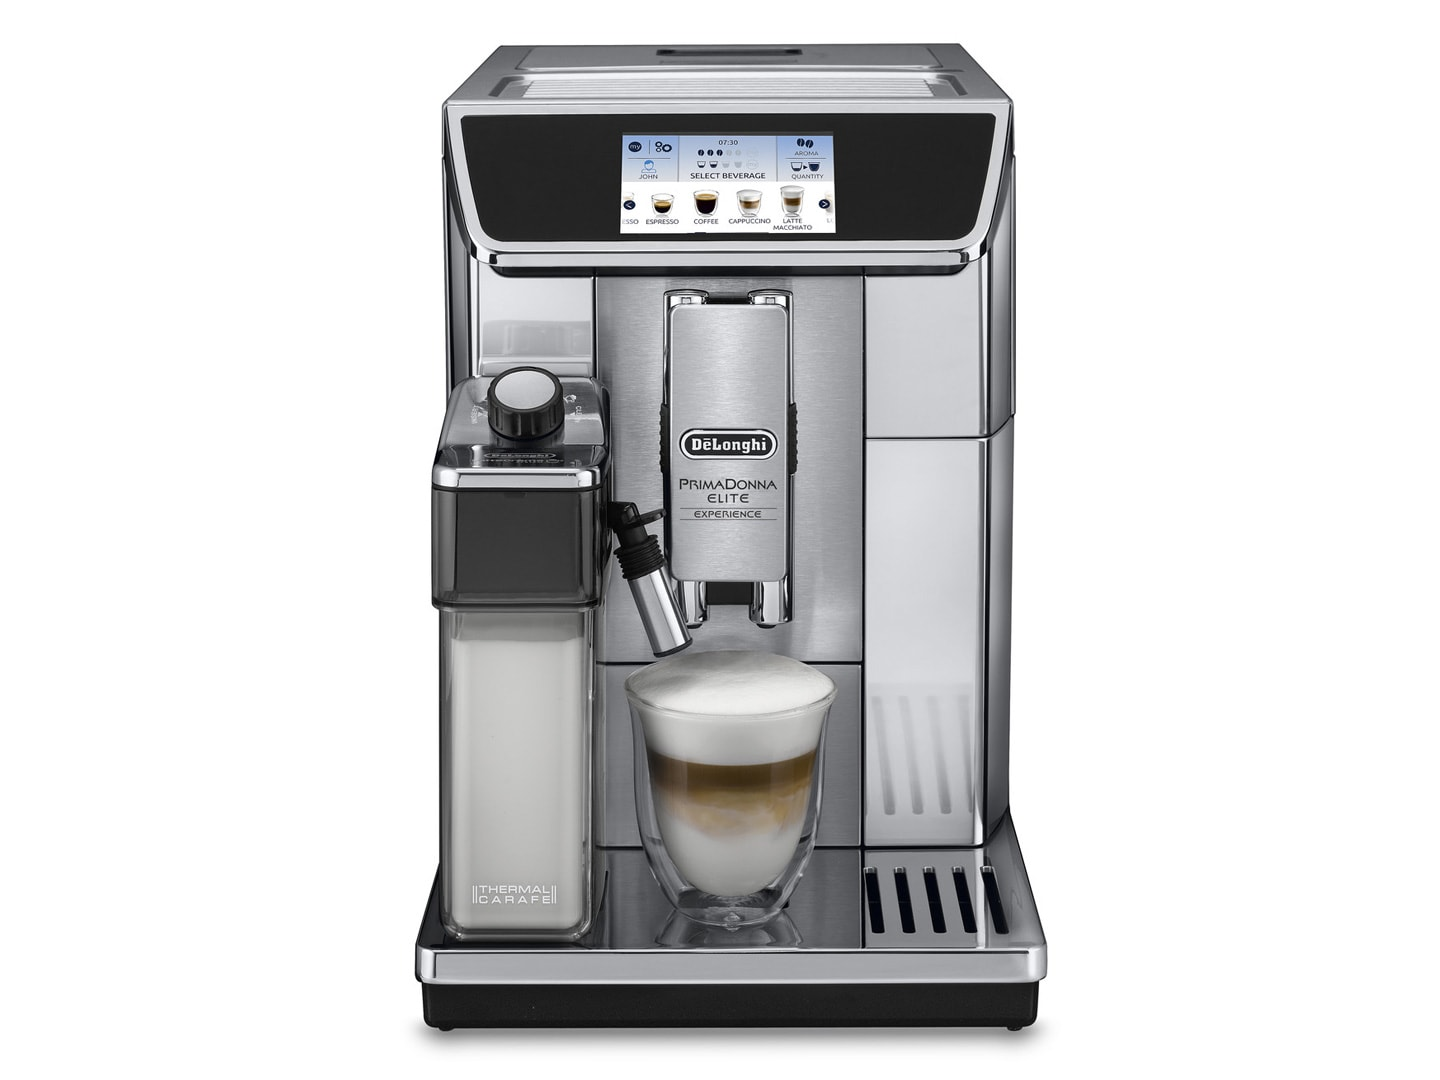 3dce82a4a59a PrimaDonna Elite Experience ECAM 650.85.MS - Fully Automatic Coffee Machine